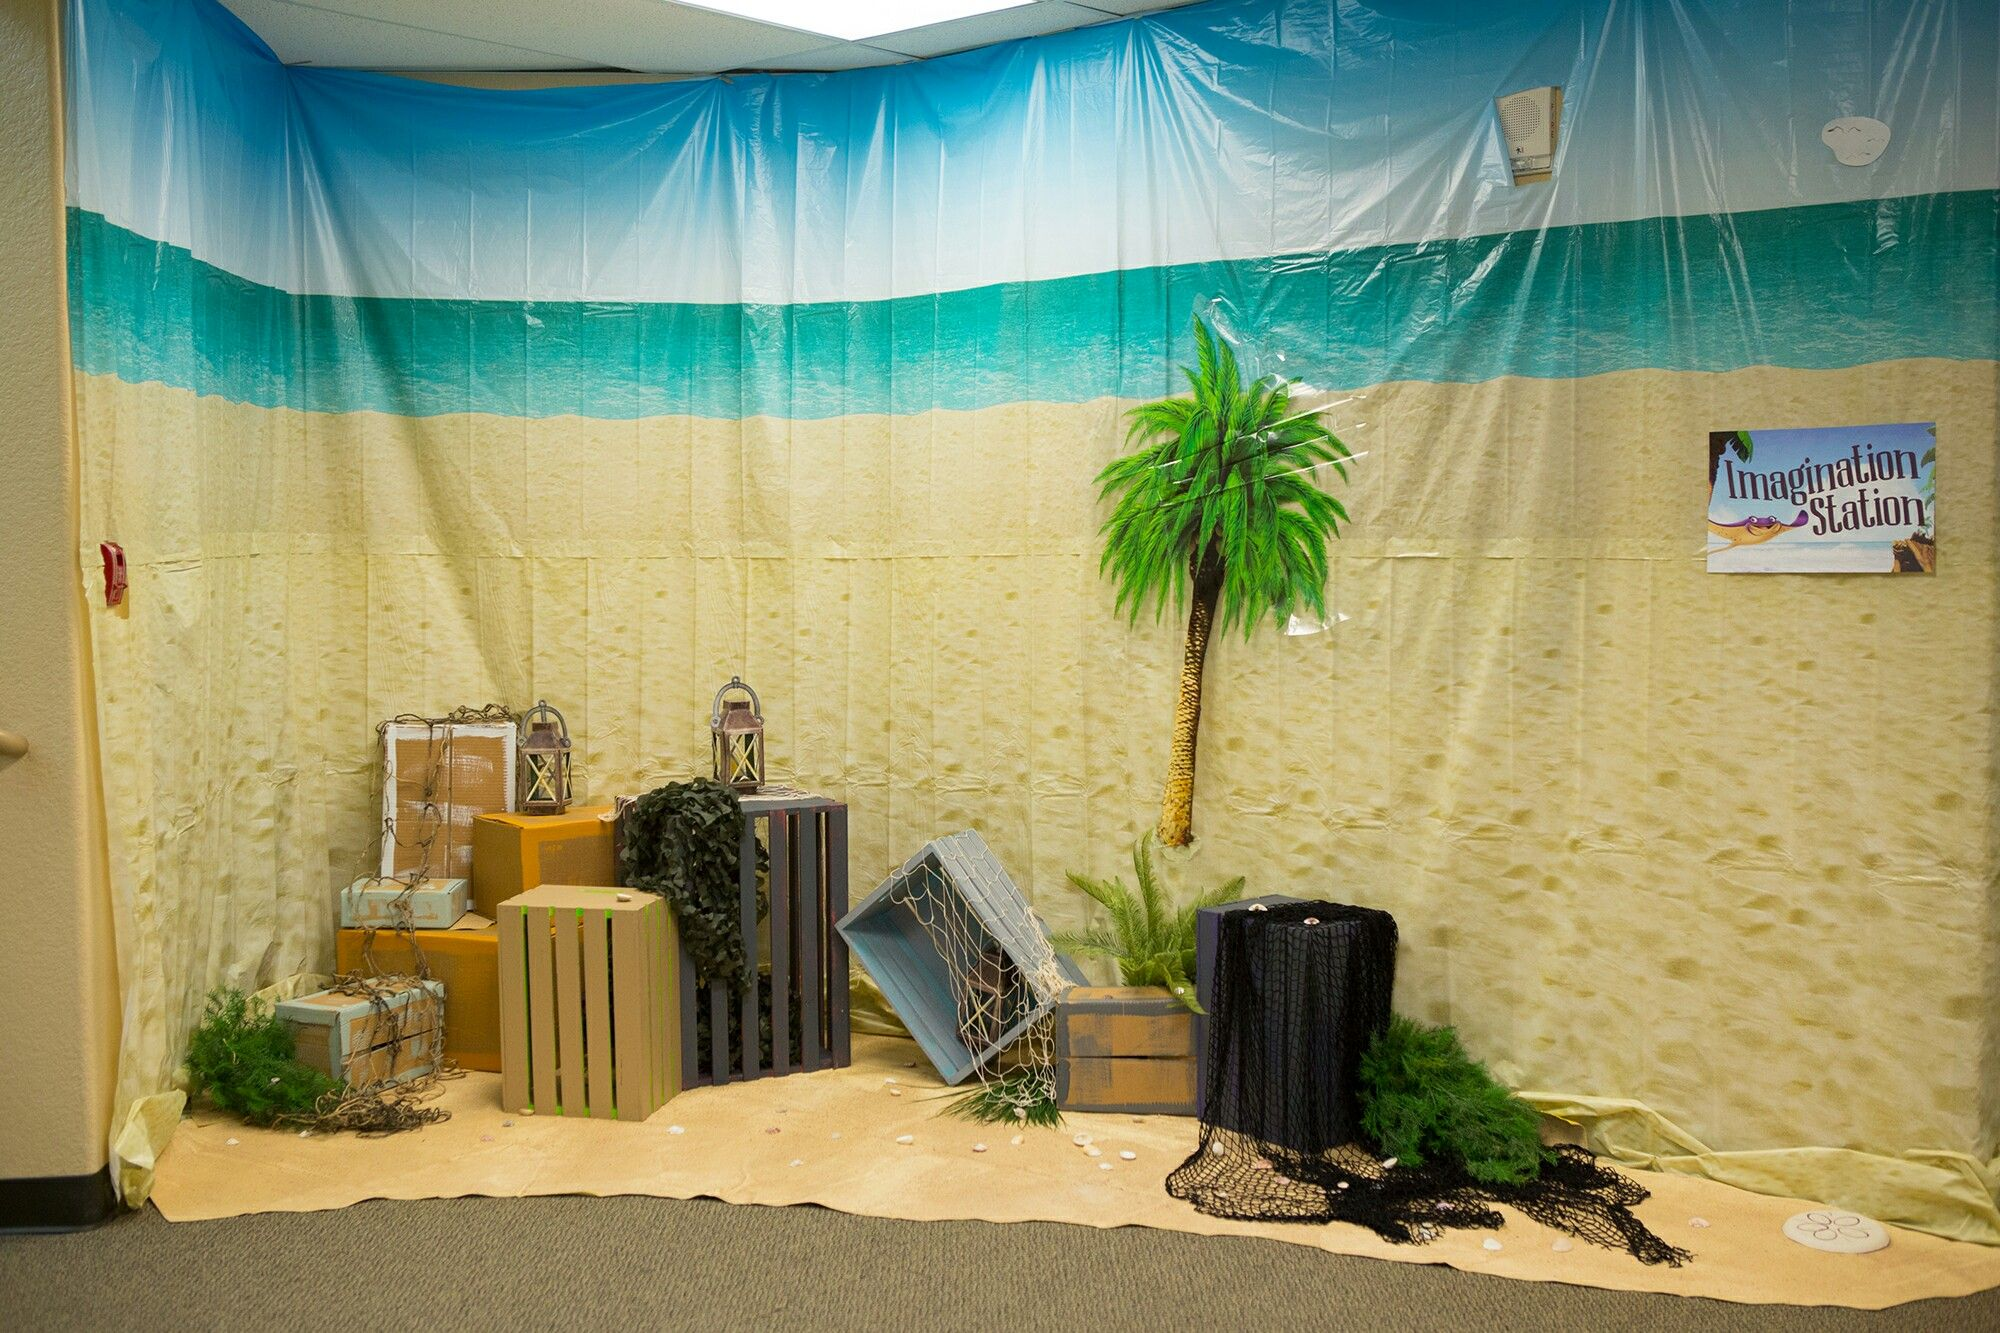 Pin by Beth Nelson on vbs shipwreck water themes   Pinterest ...